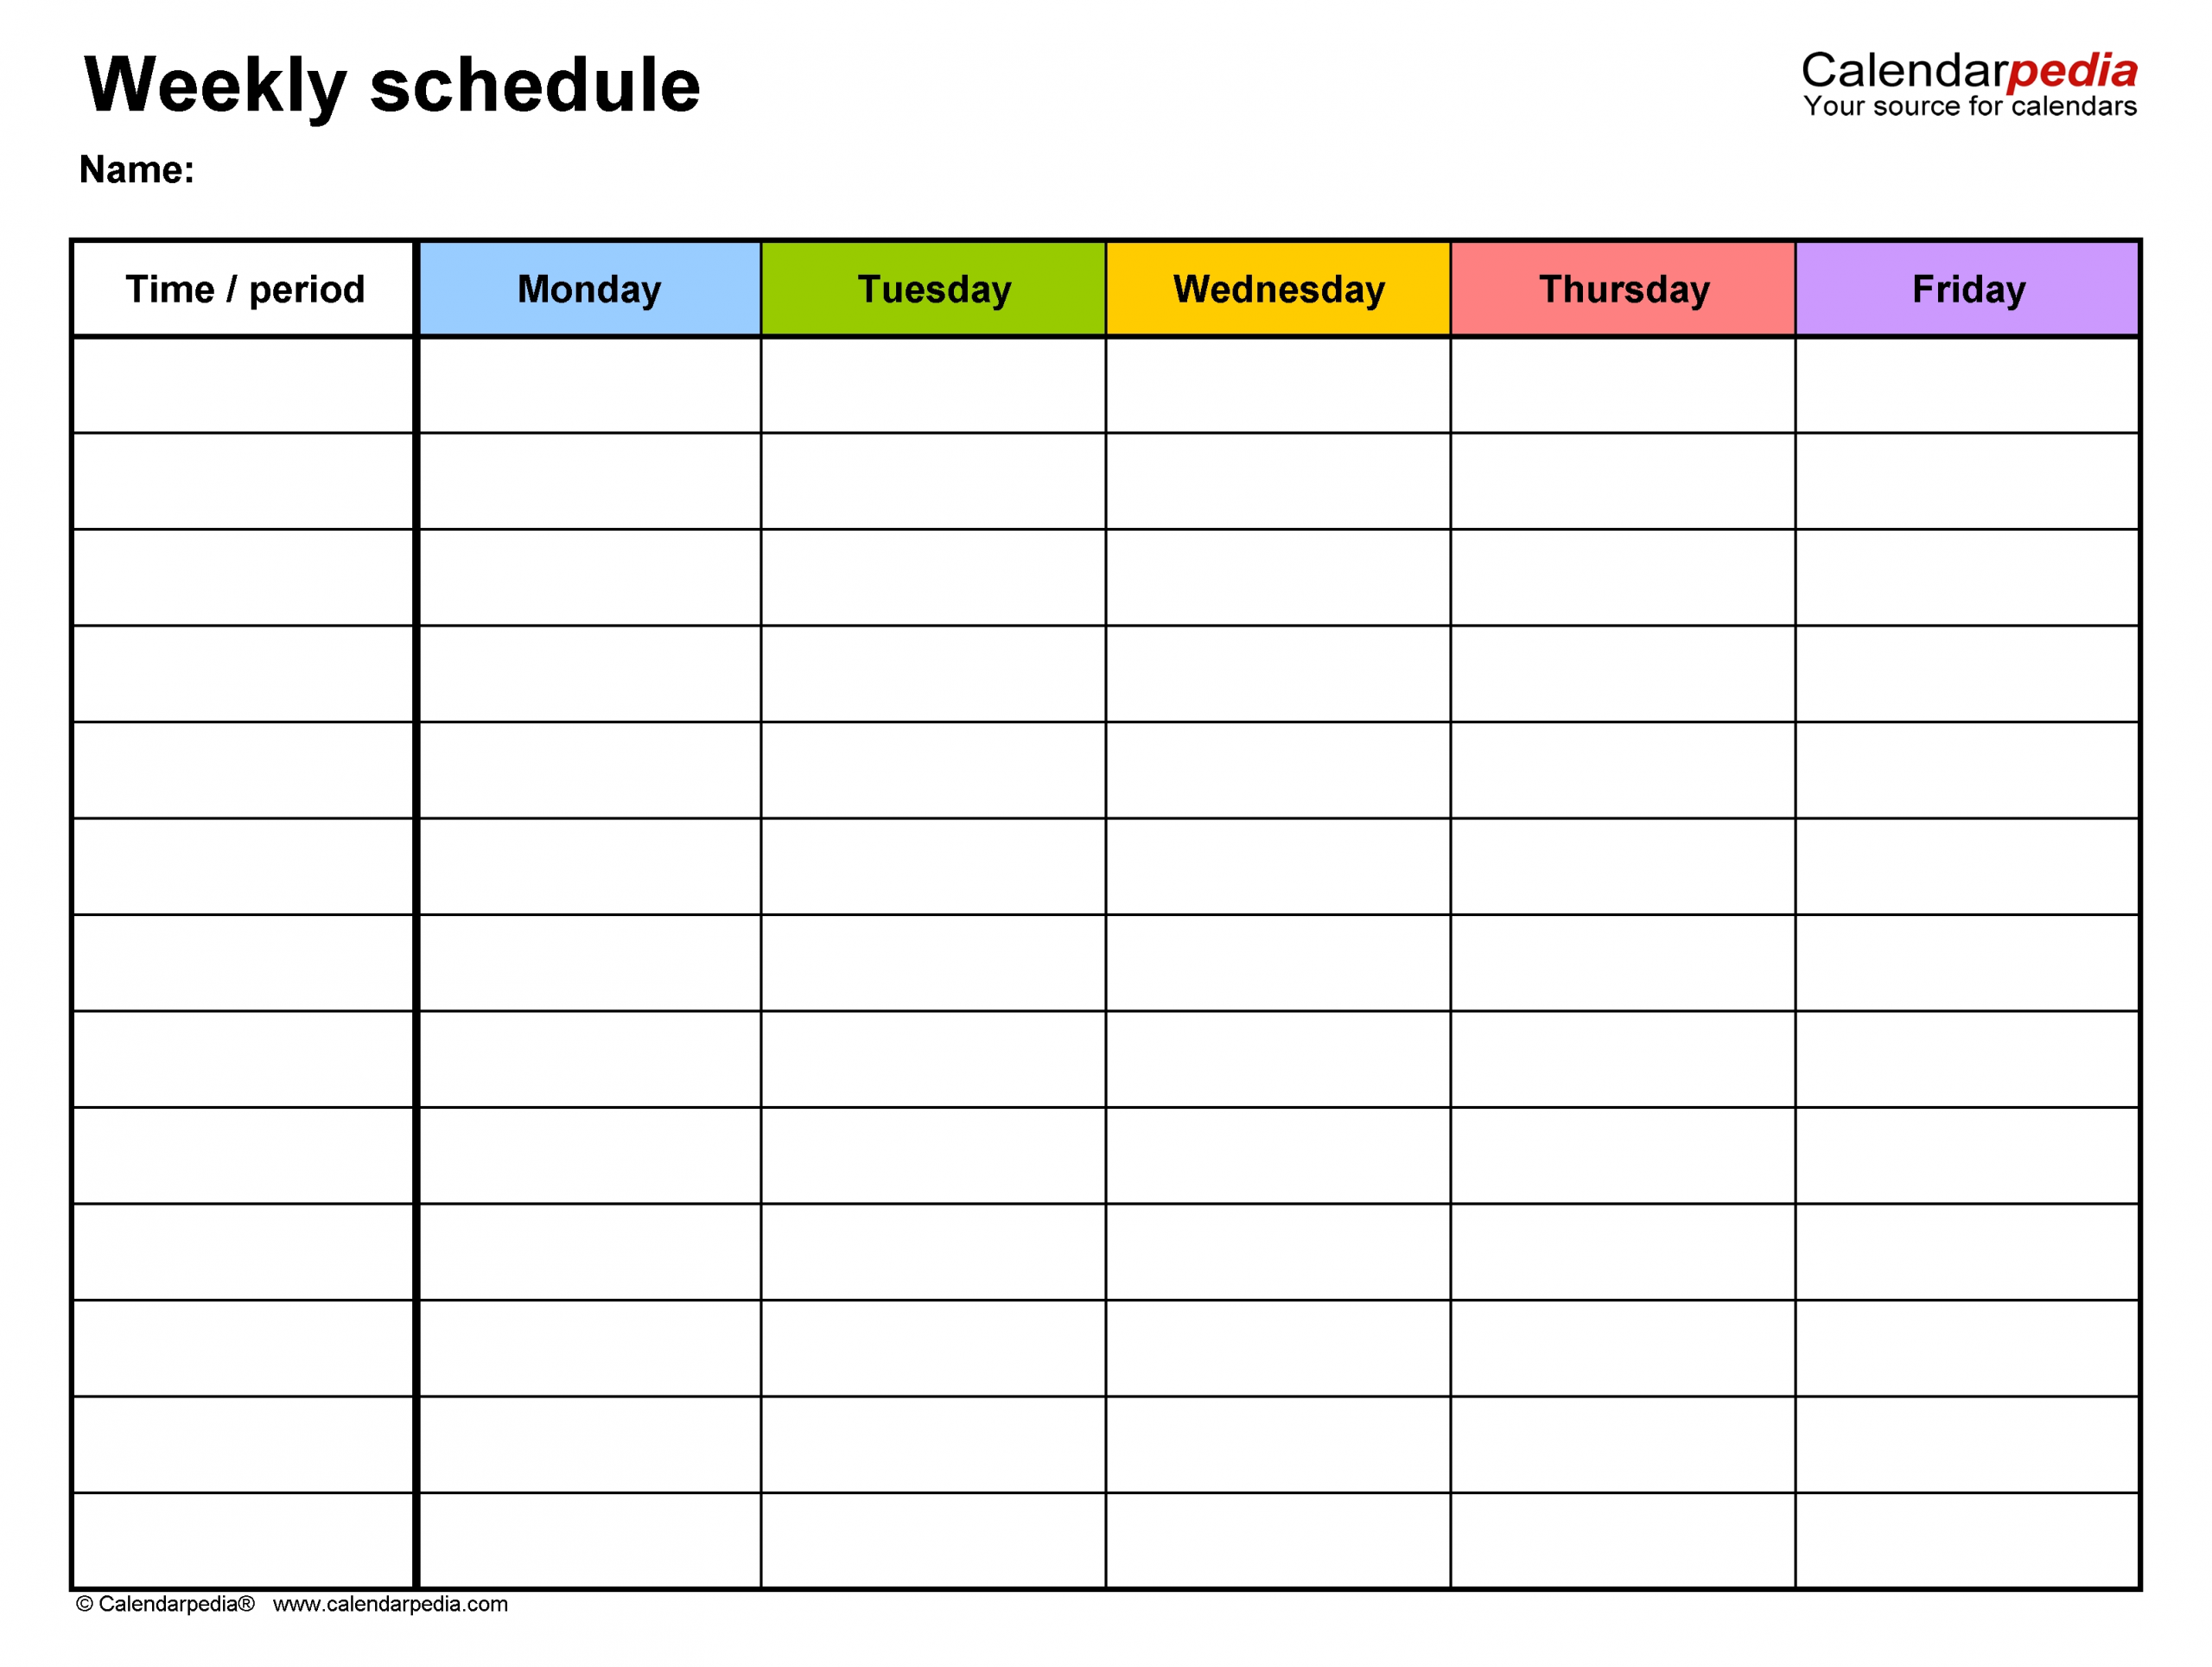 Free Weekly Schedule Templates For Word - 18 Templates for 5 Days Event Calendar Template